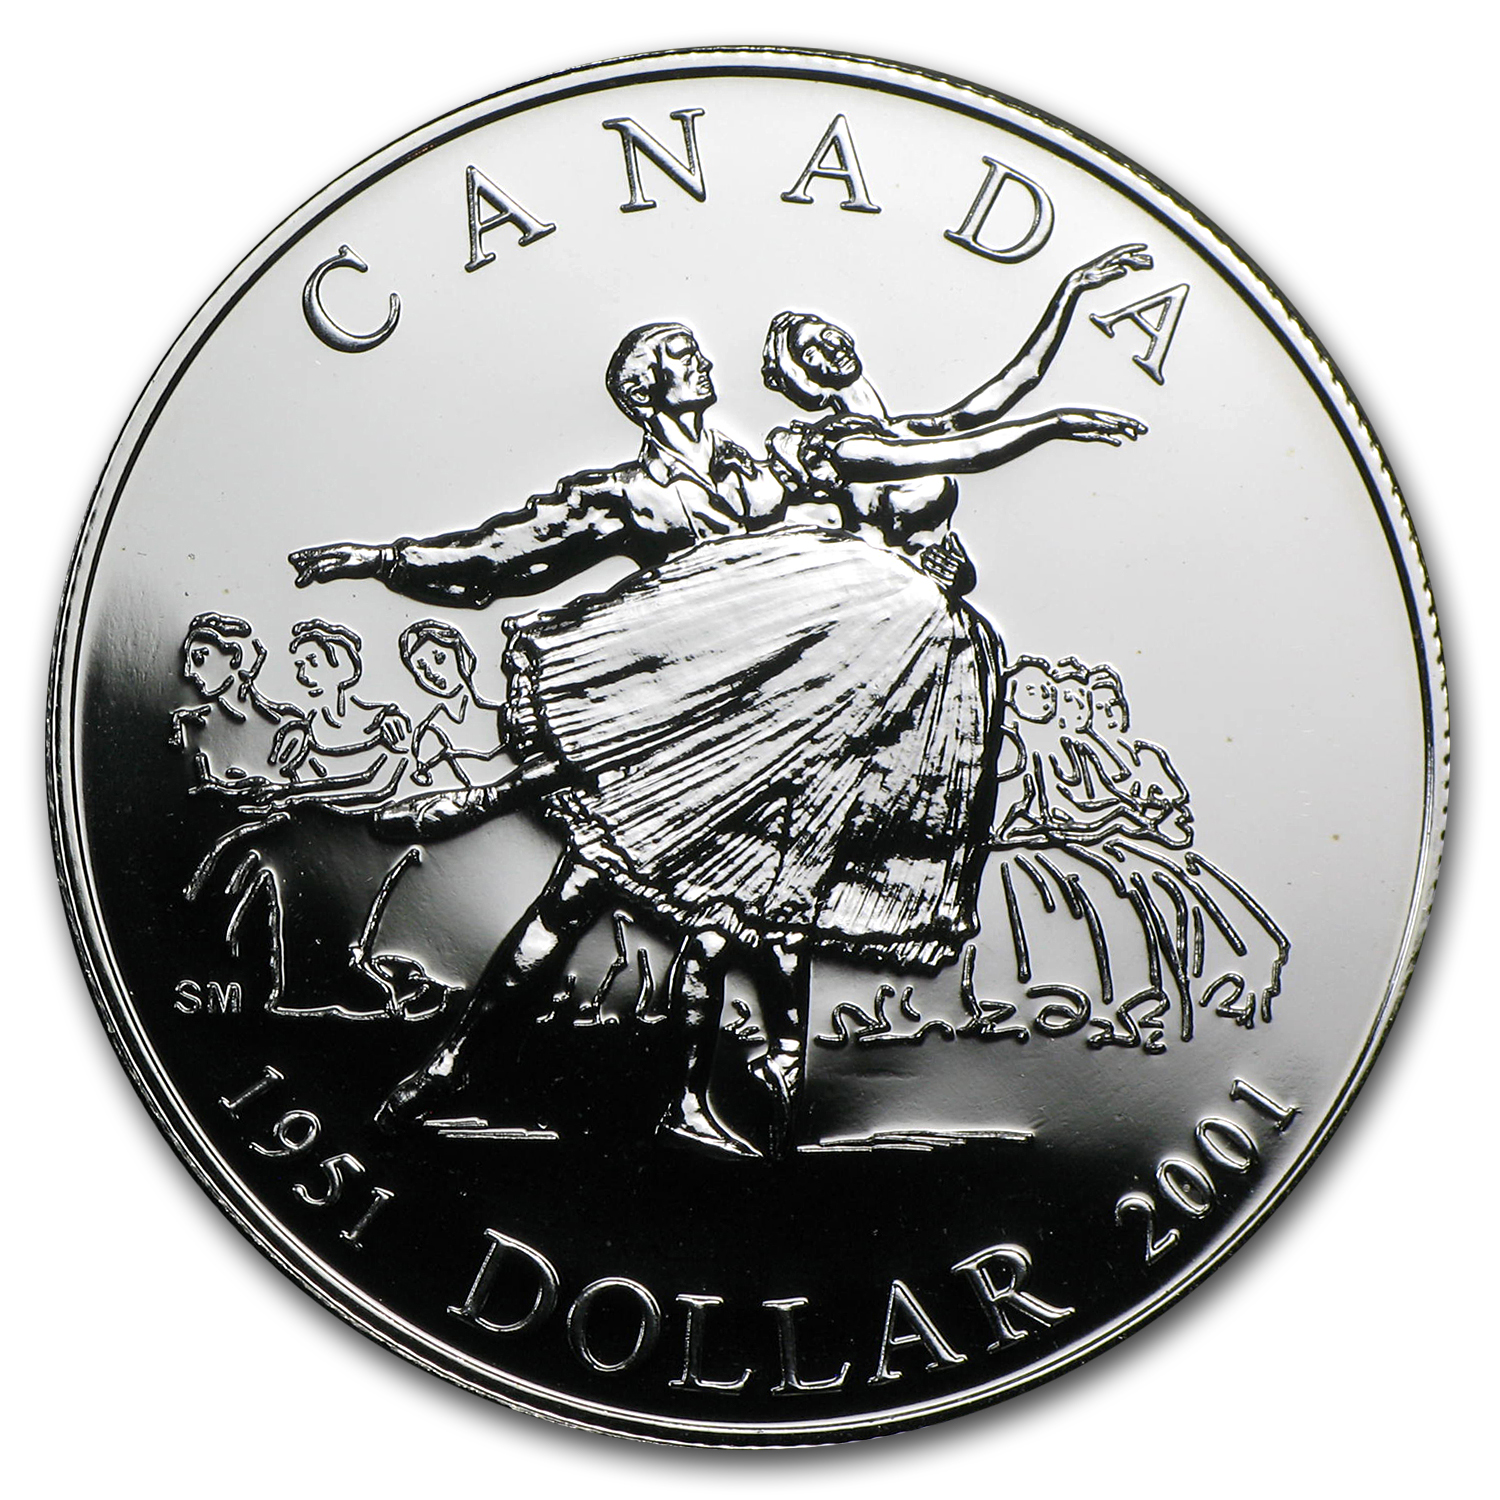 2001 Canadian BU Silver Dollar - National Ballet of Canada